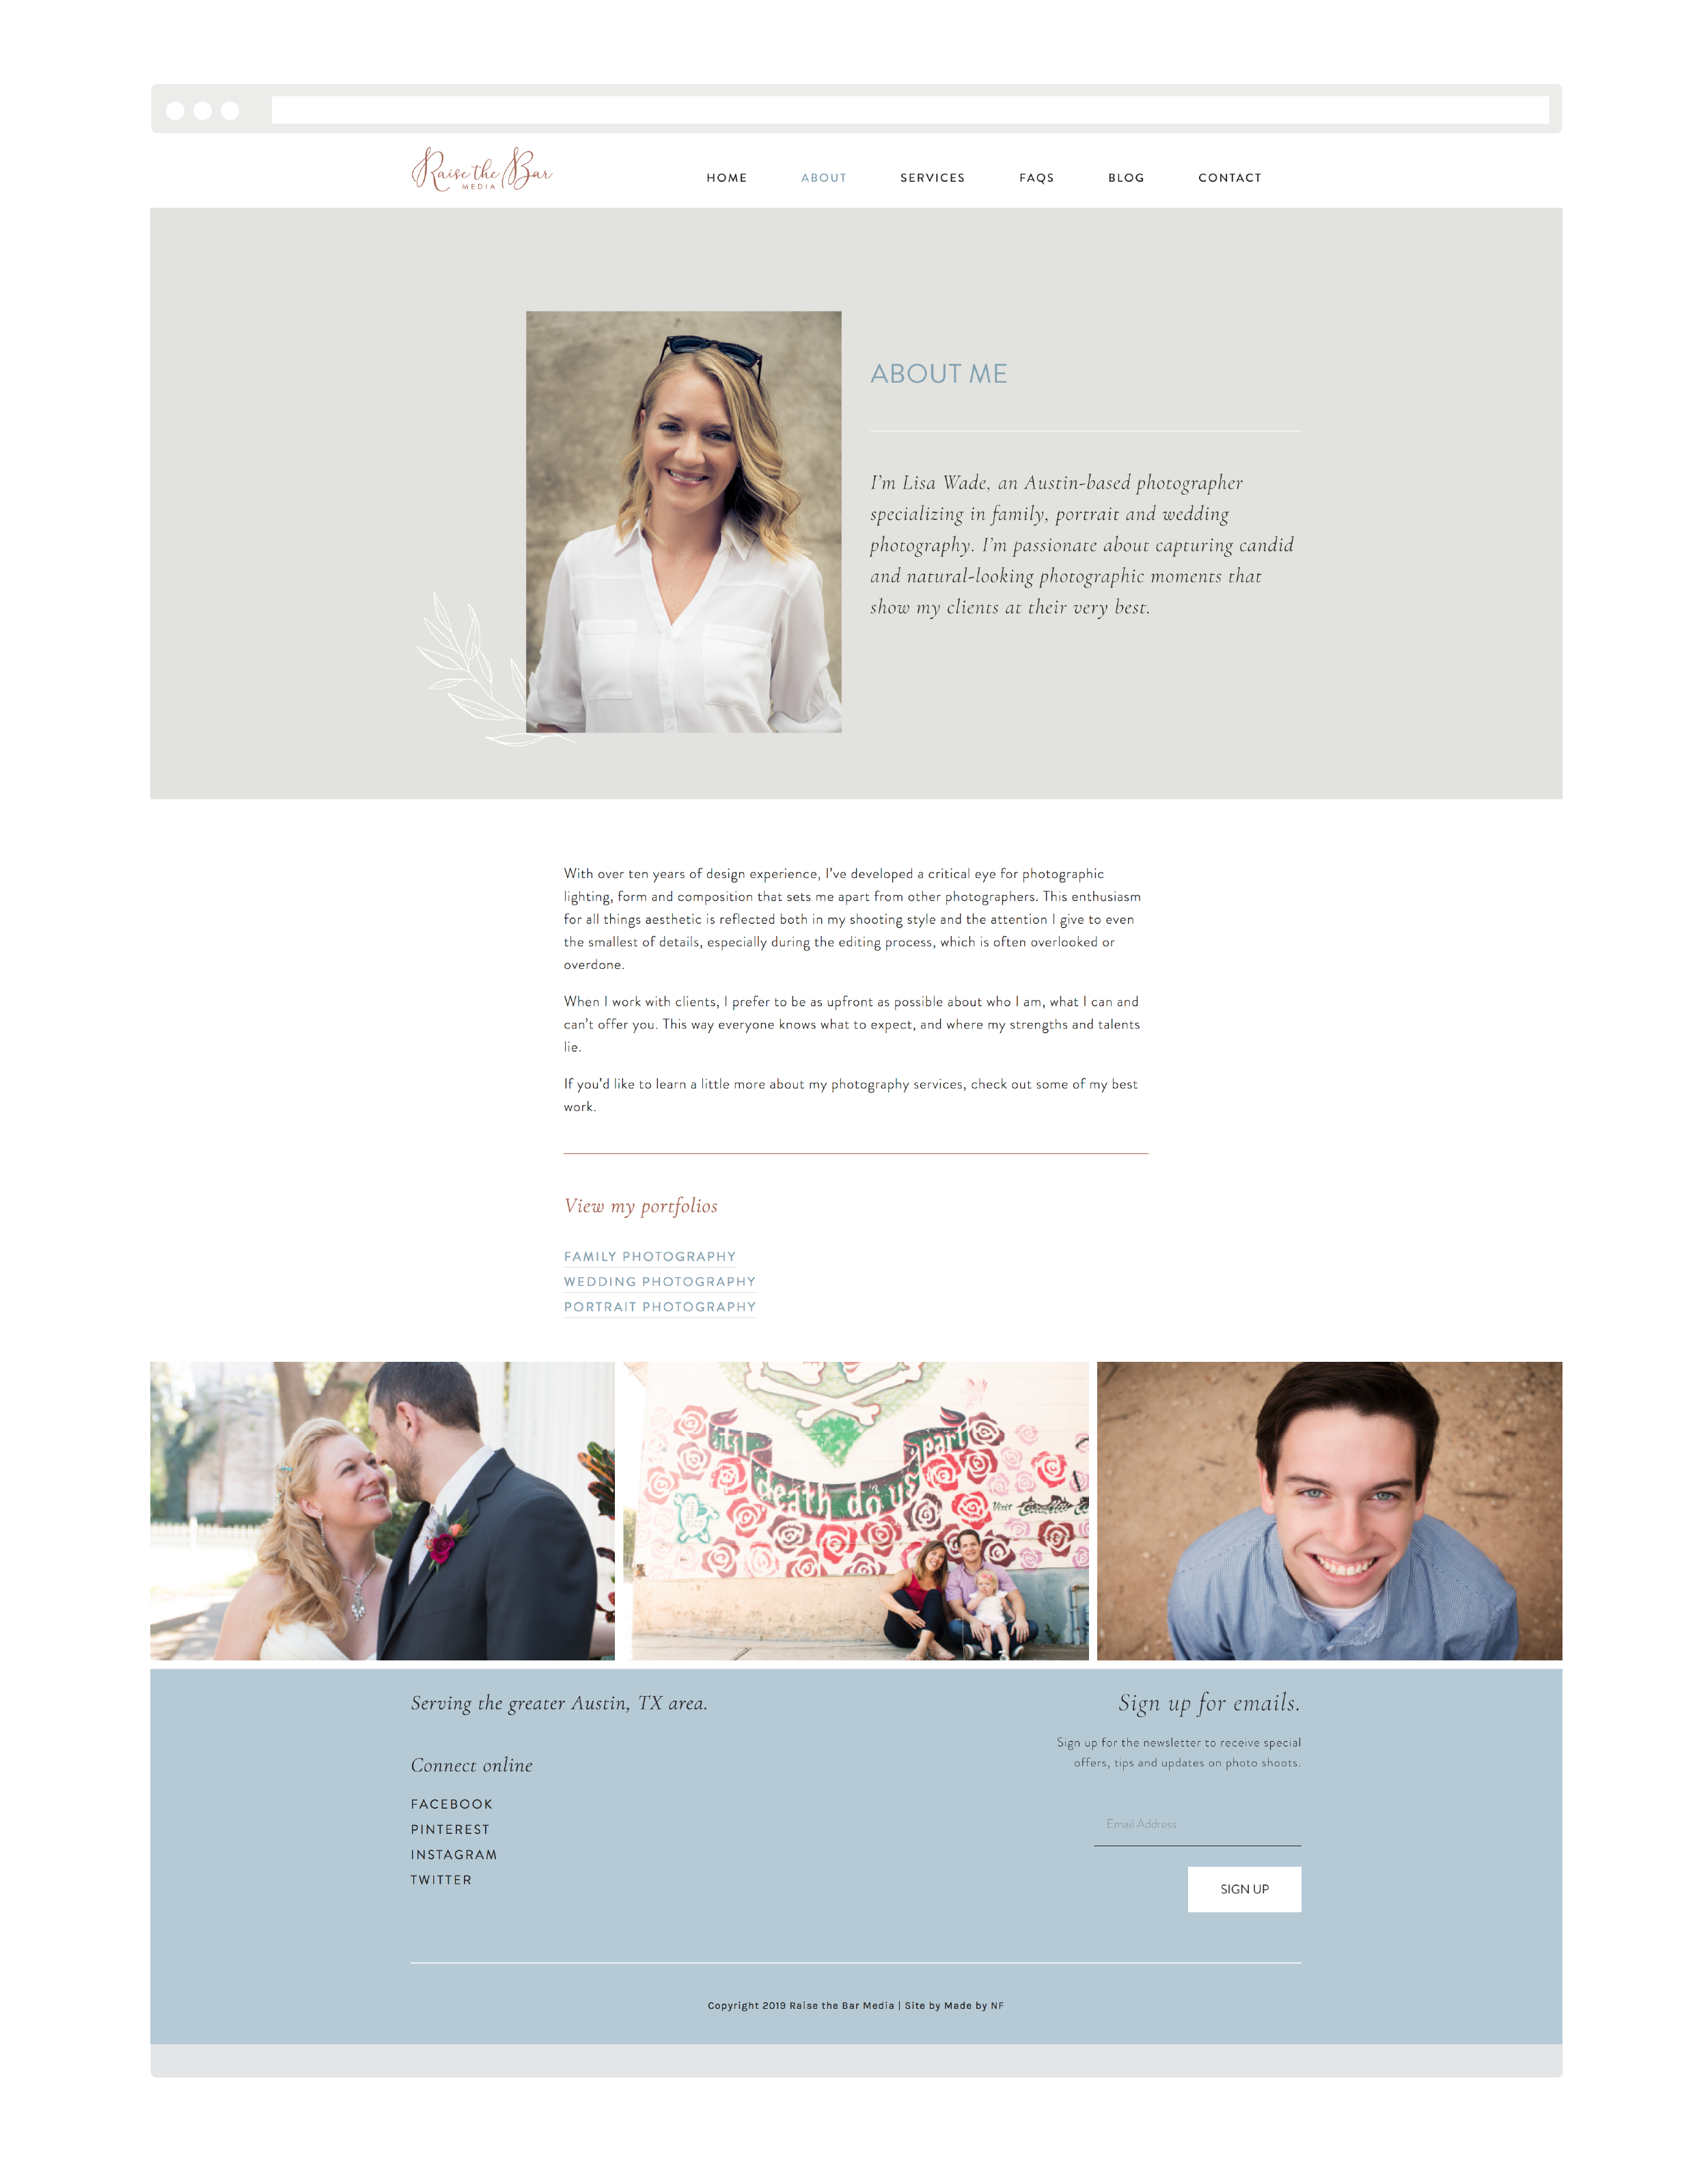 Custom Squarespace Design for Wedding Photographer - Wedding Photographer Squarespace Website copy 2.png